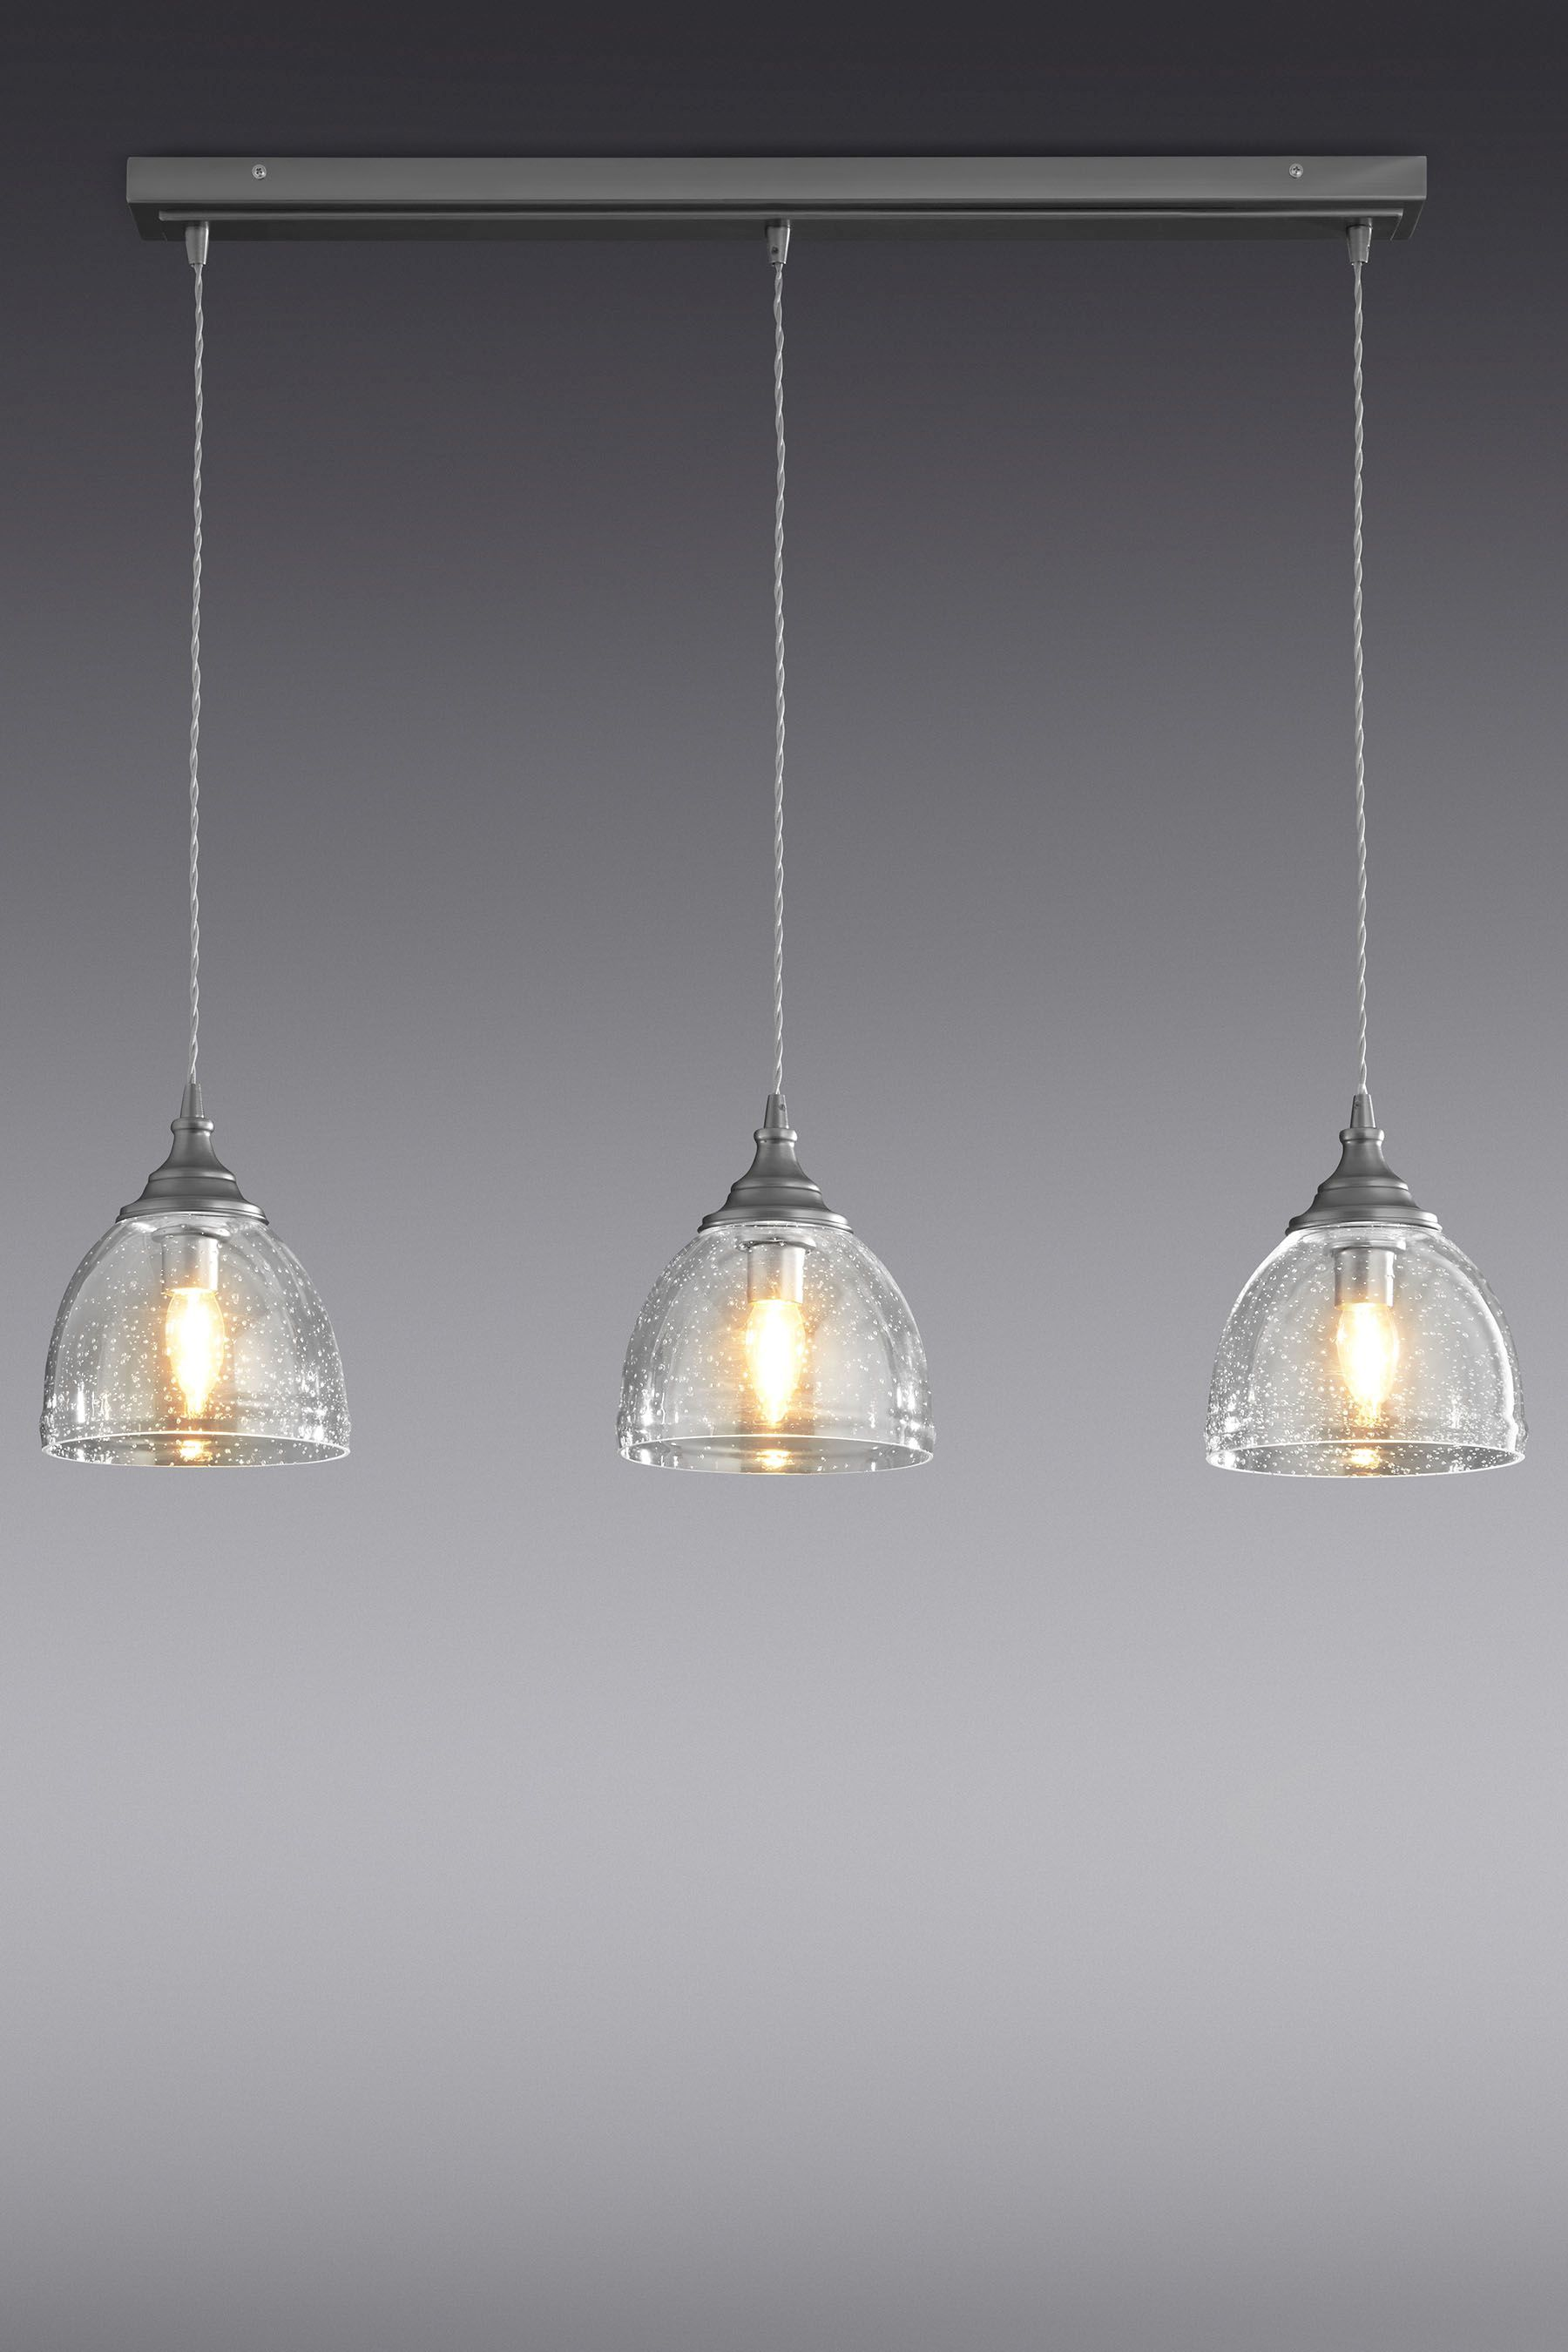 Buy oxford 3 light linear pendant from the next uk online shop buy oxford 3 light linear pendant from the next uk online shop aloadofball Images